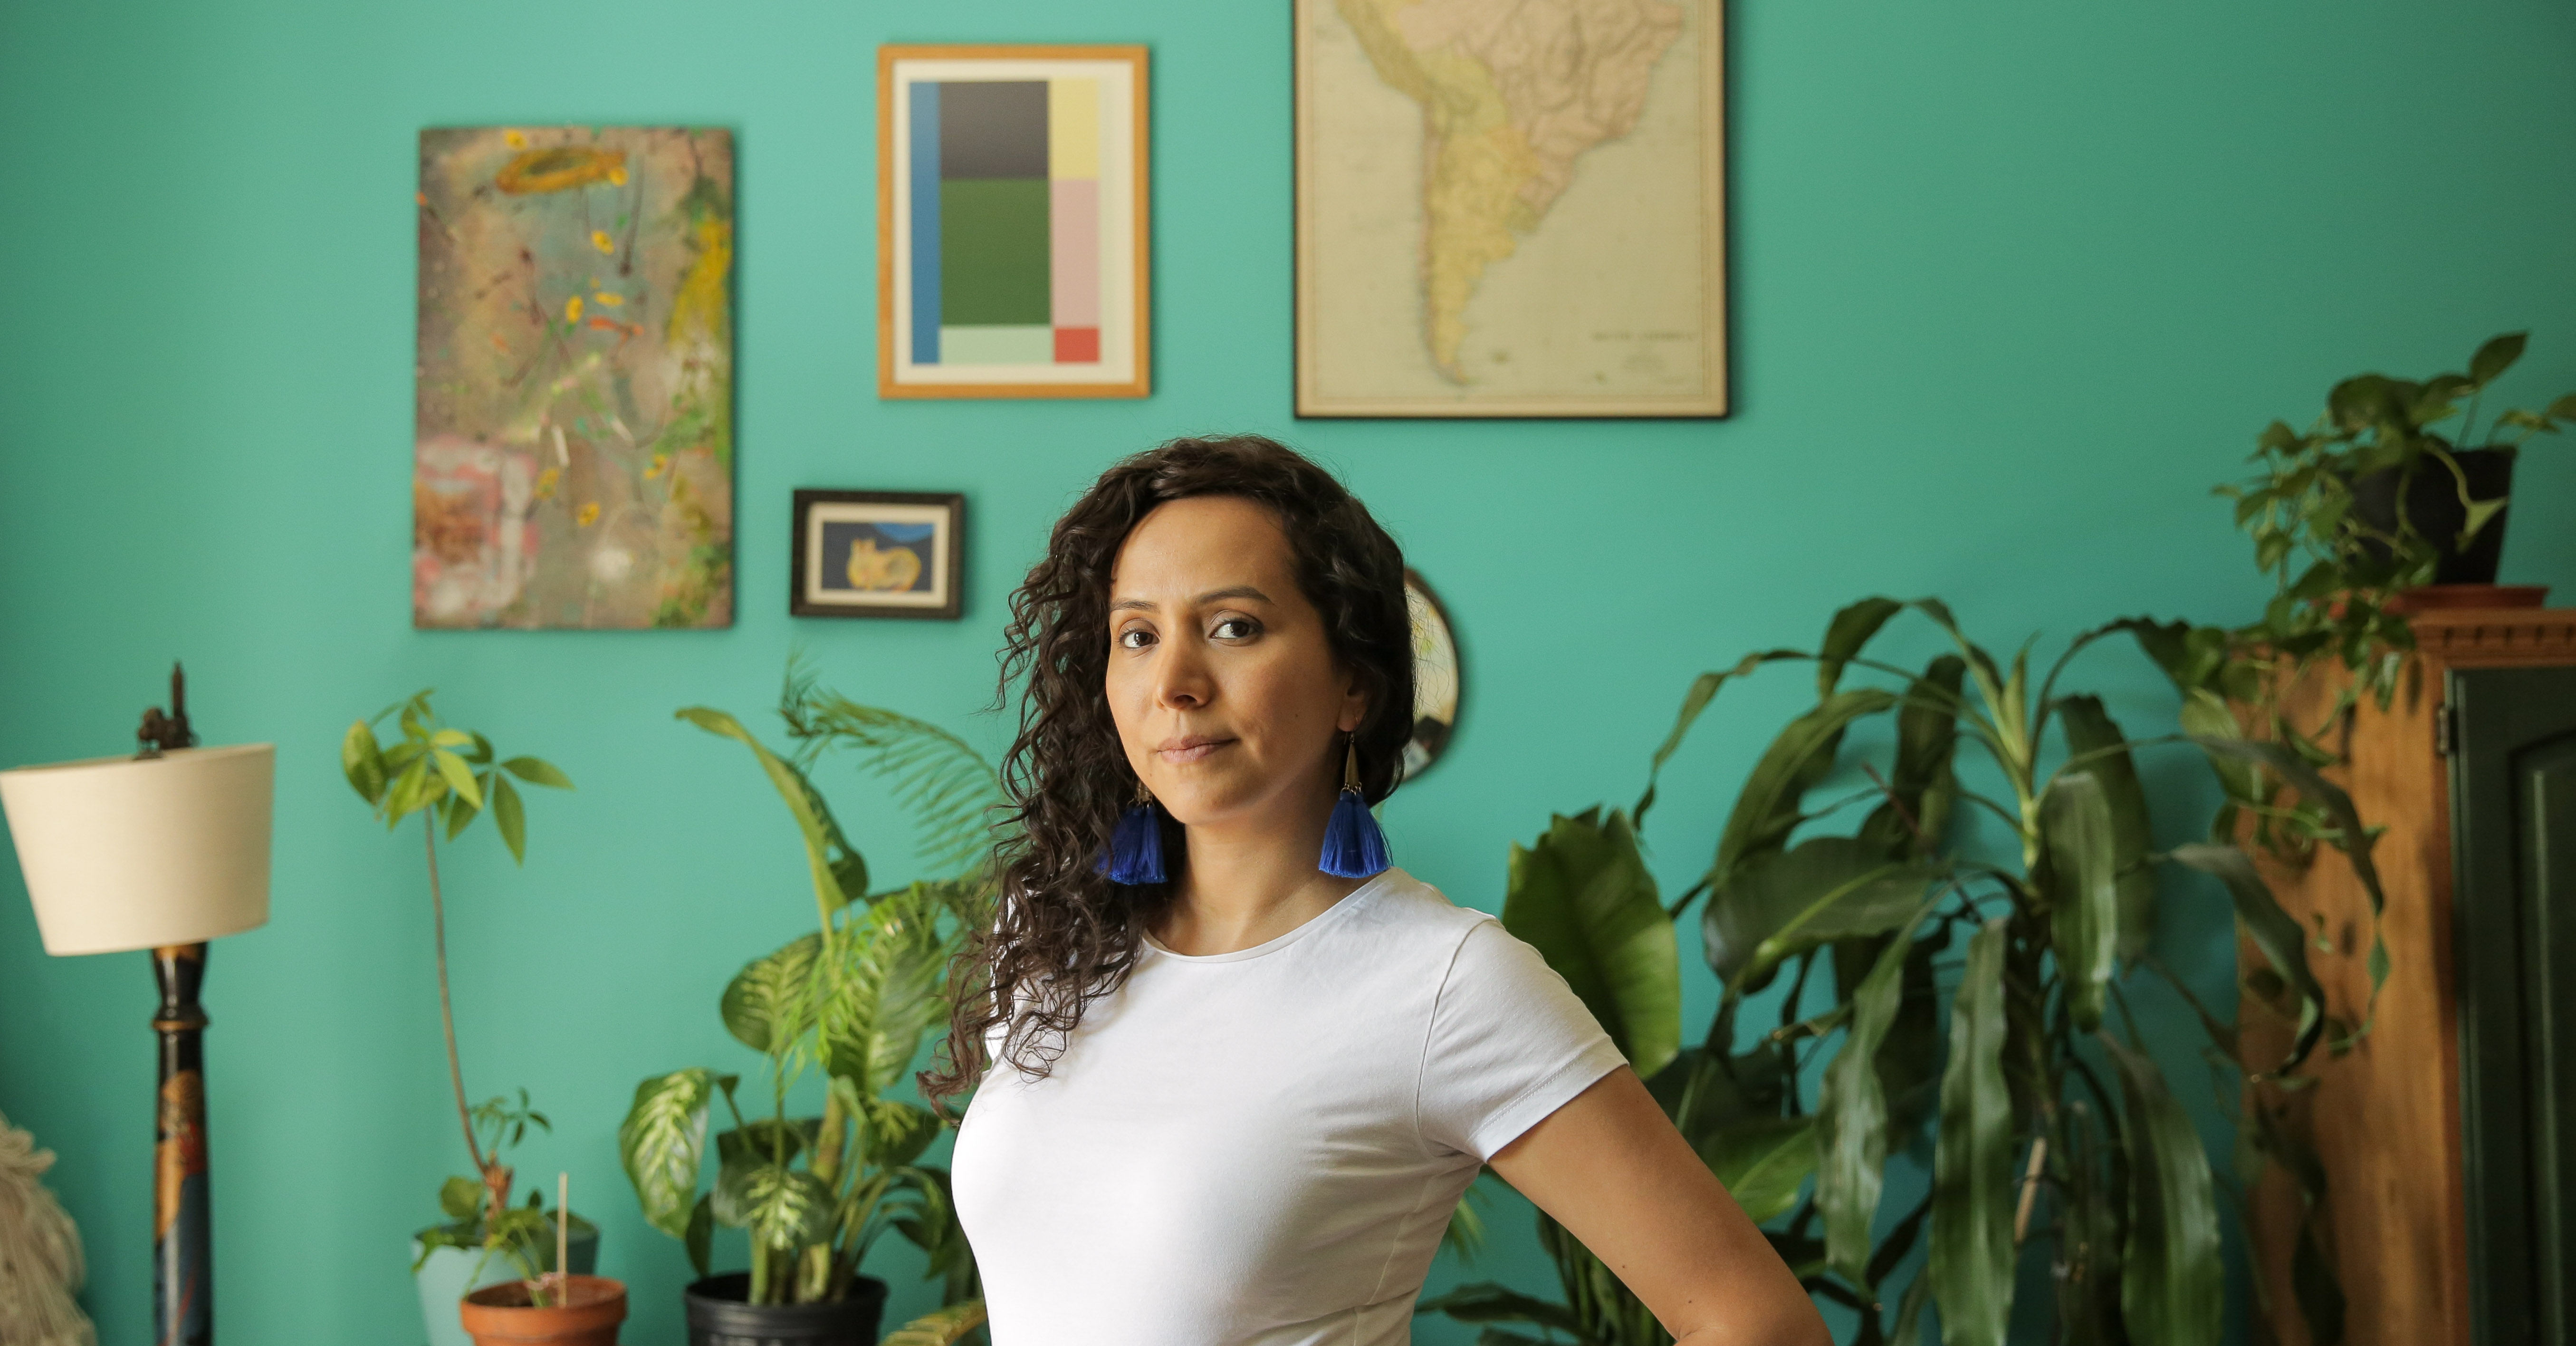 Meet Diana Castro, the Artist and Entrepreneur Behind Metaphysical Accessory Line Ser Paraíso